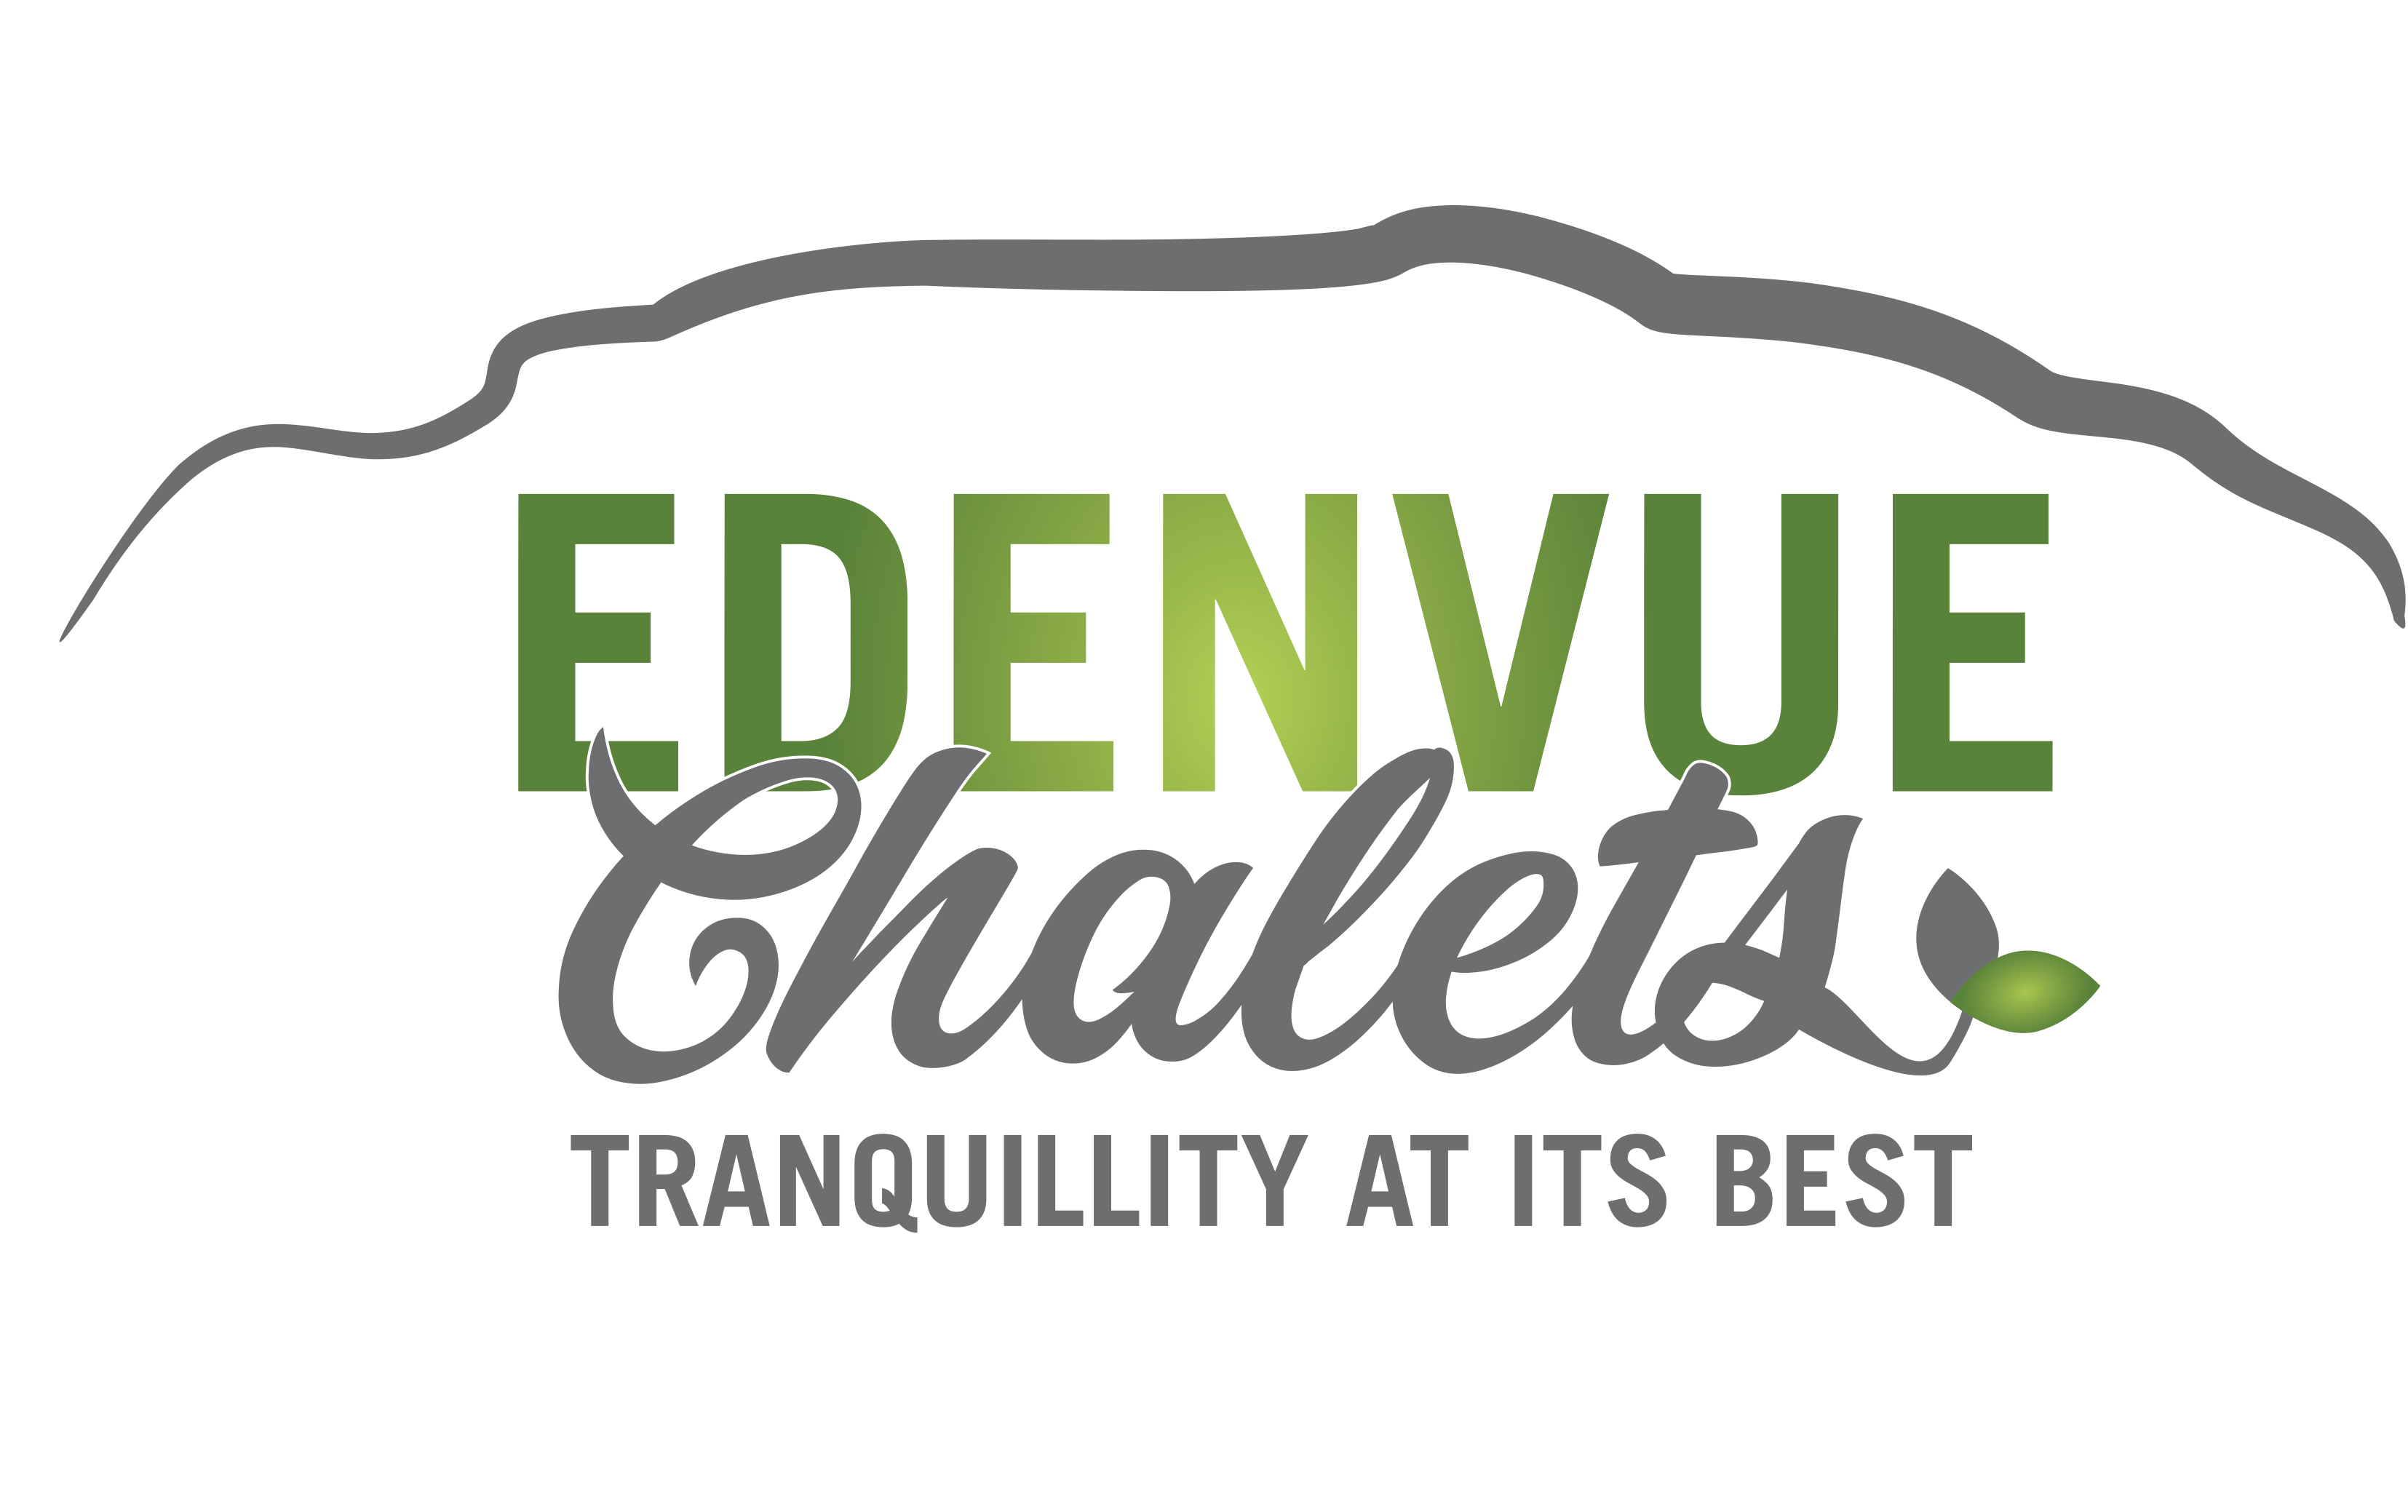 Edenvue Chalets - Self Catering Chalets